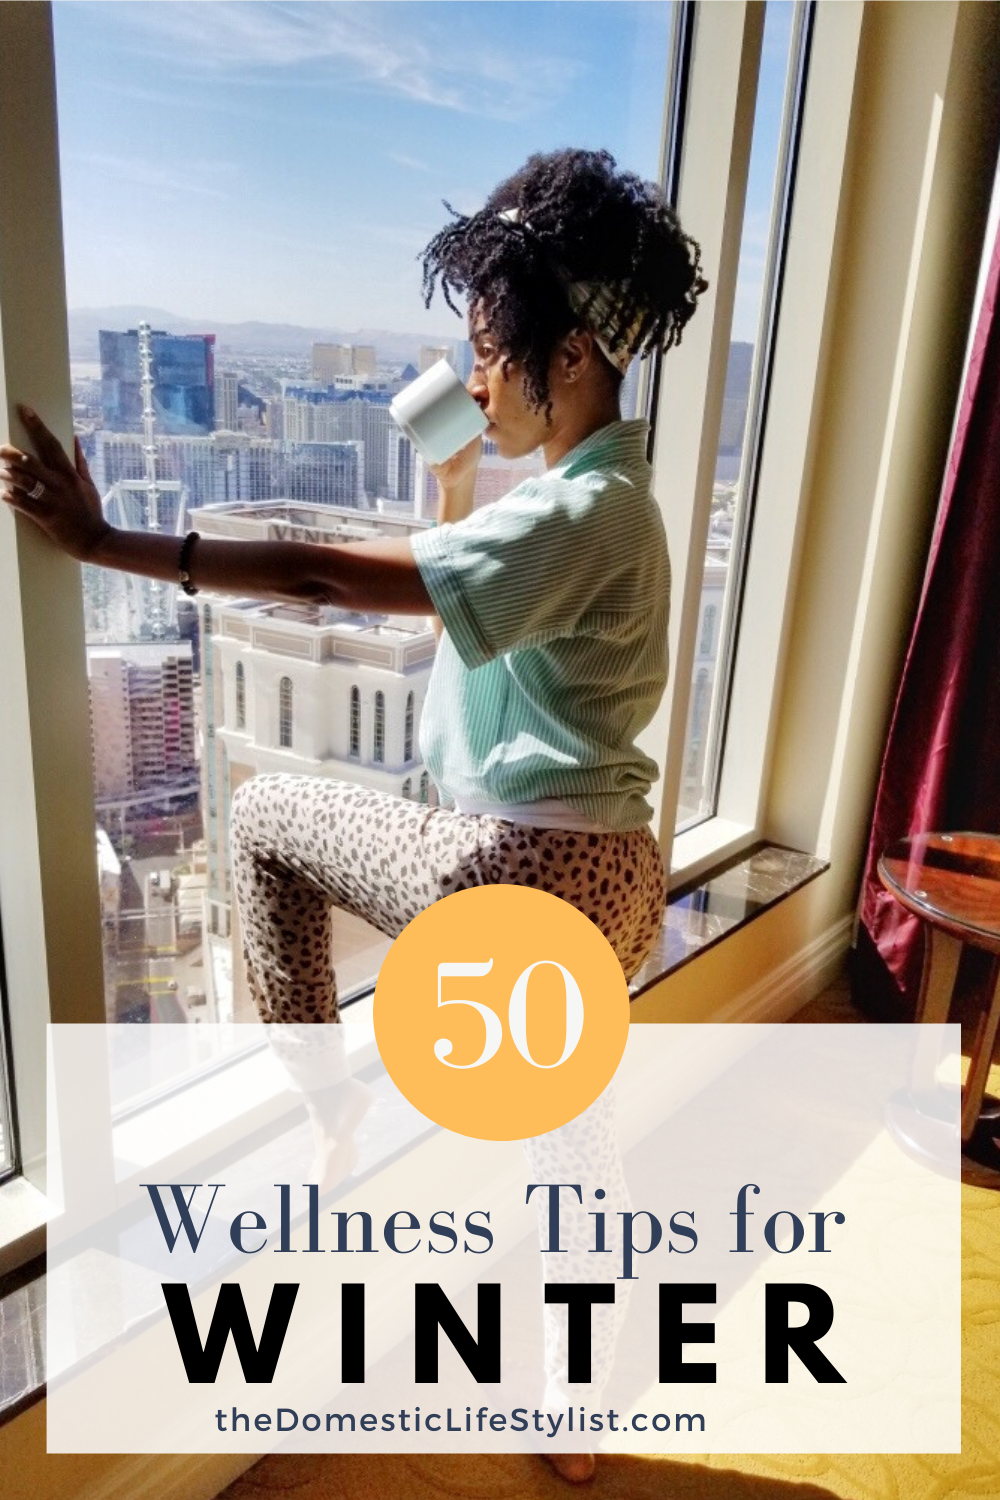 Contrary to popular opinion, you don't have to get sick during the winter. Try these winter wellness tips and trick  to stay healthy all season long.